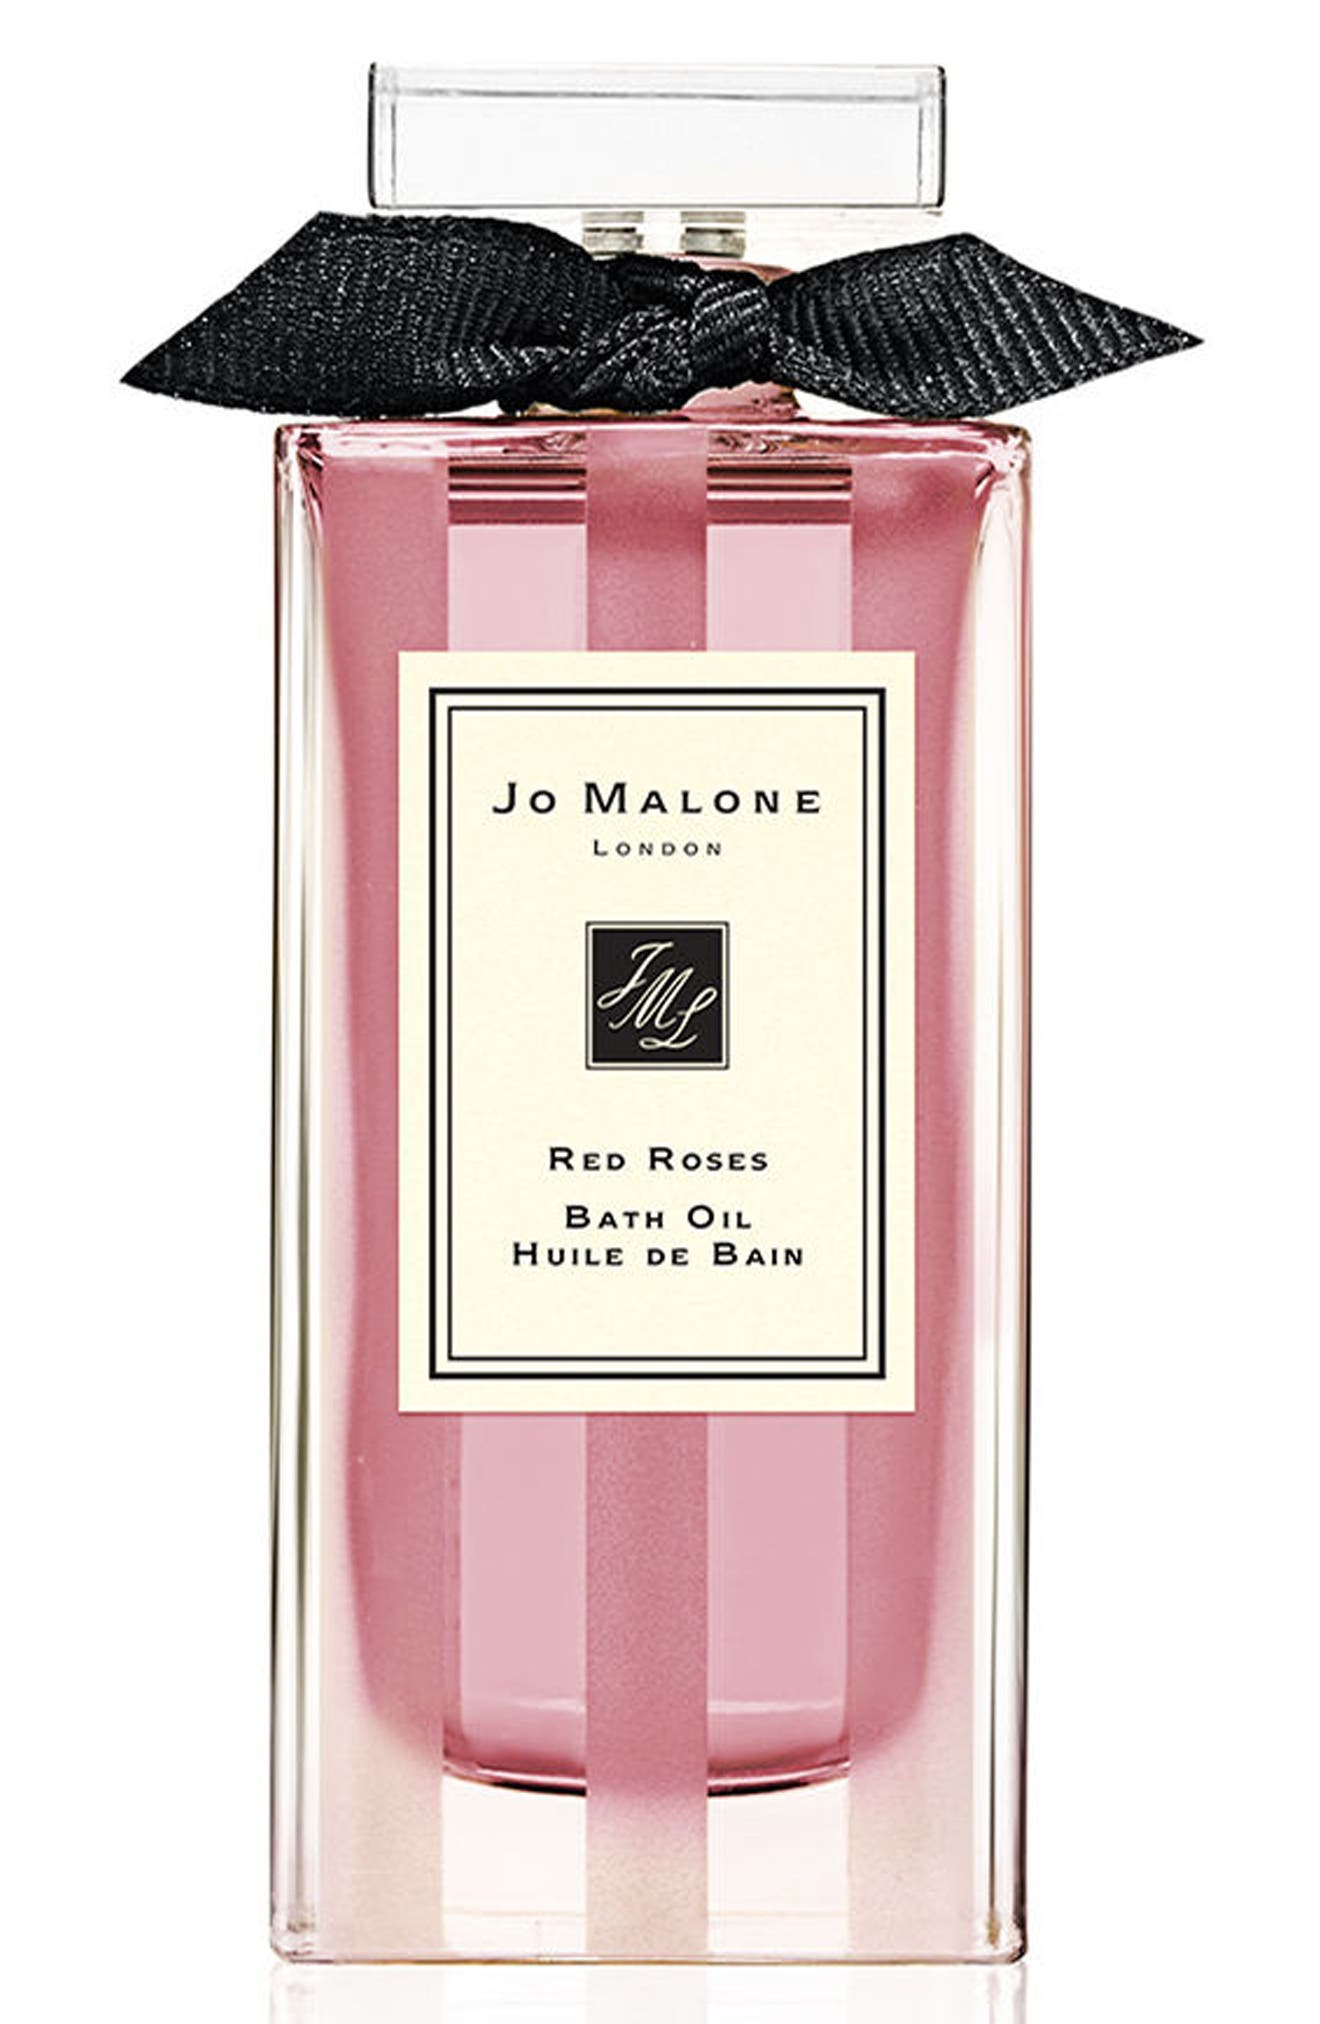 Jo Malone London™ Red Roses Bath Oil